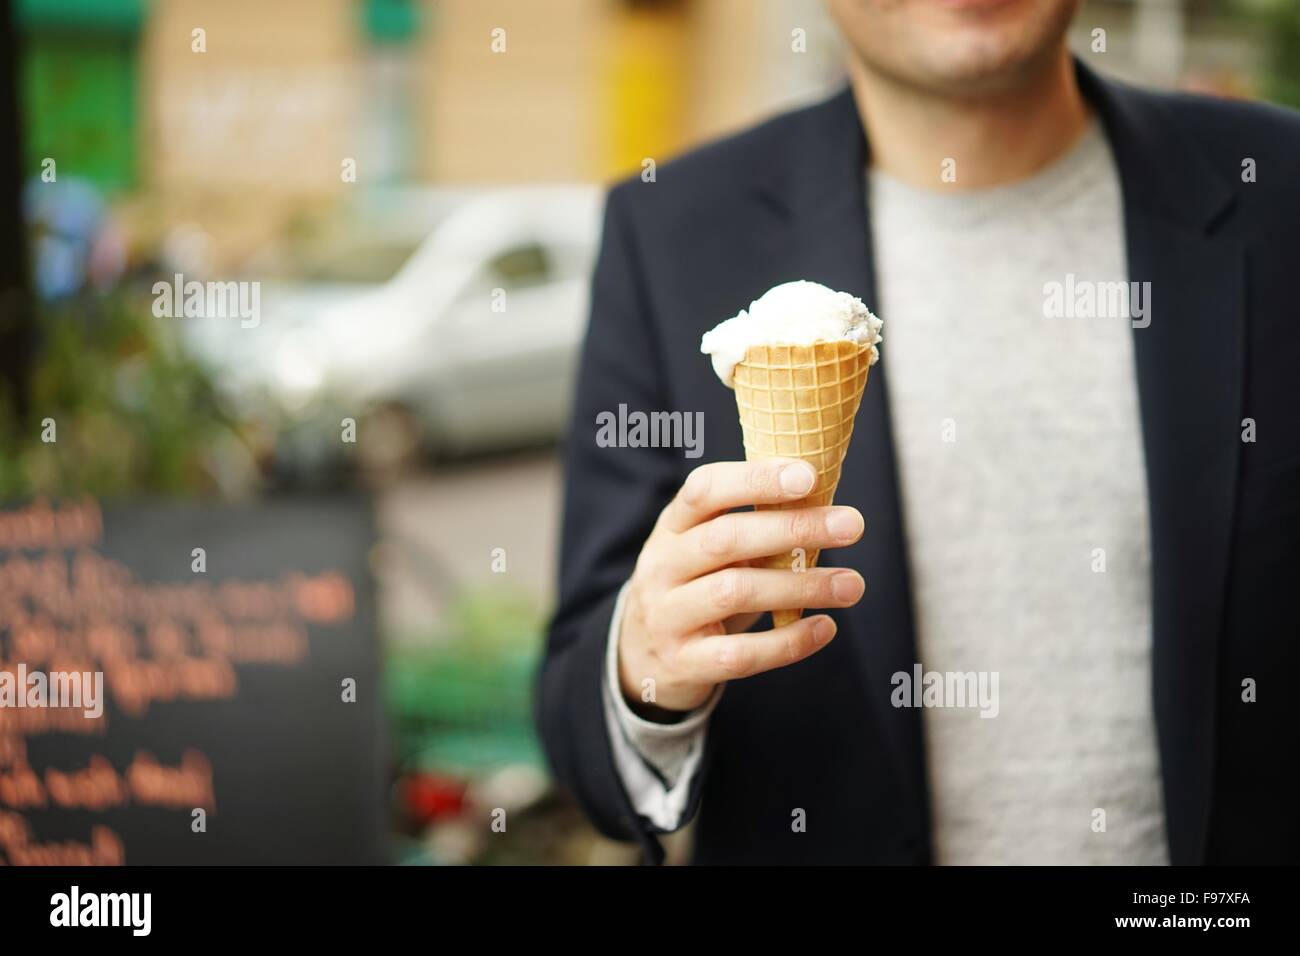 Midsection Of Man Holding Ice Cream On Street - Stock Image